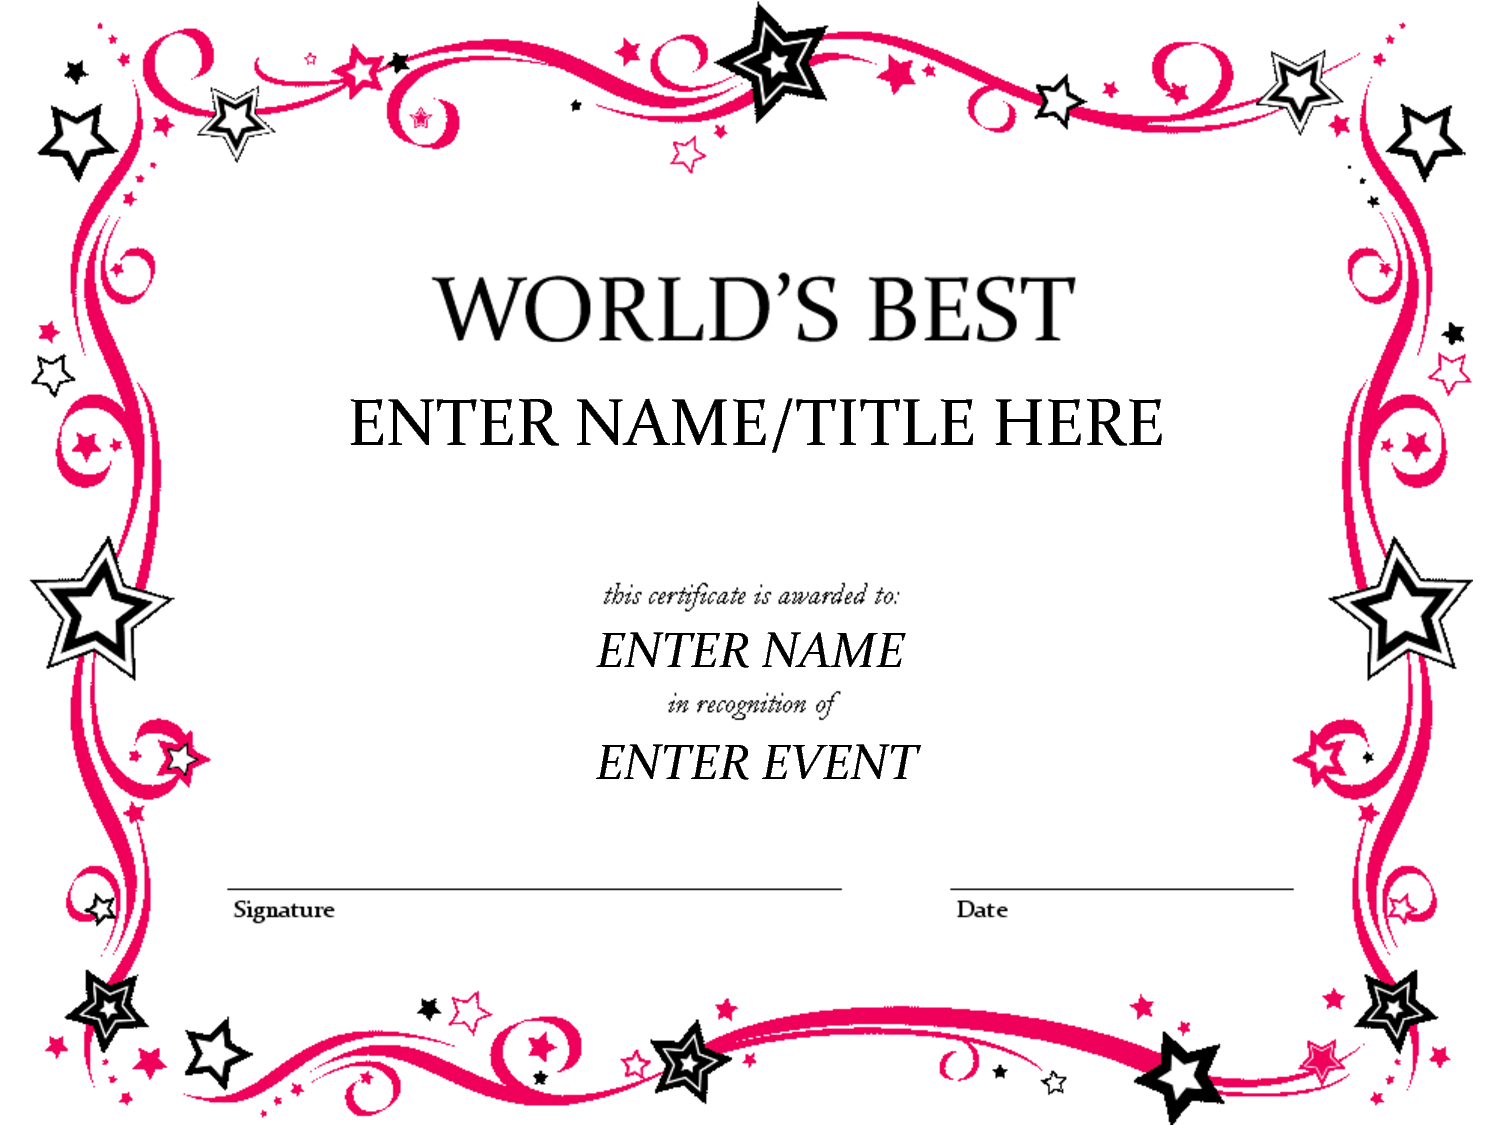 Award Certificate Template Shannon Early Pinte